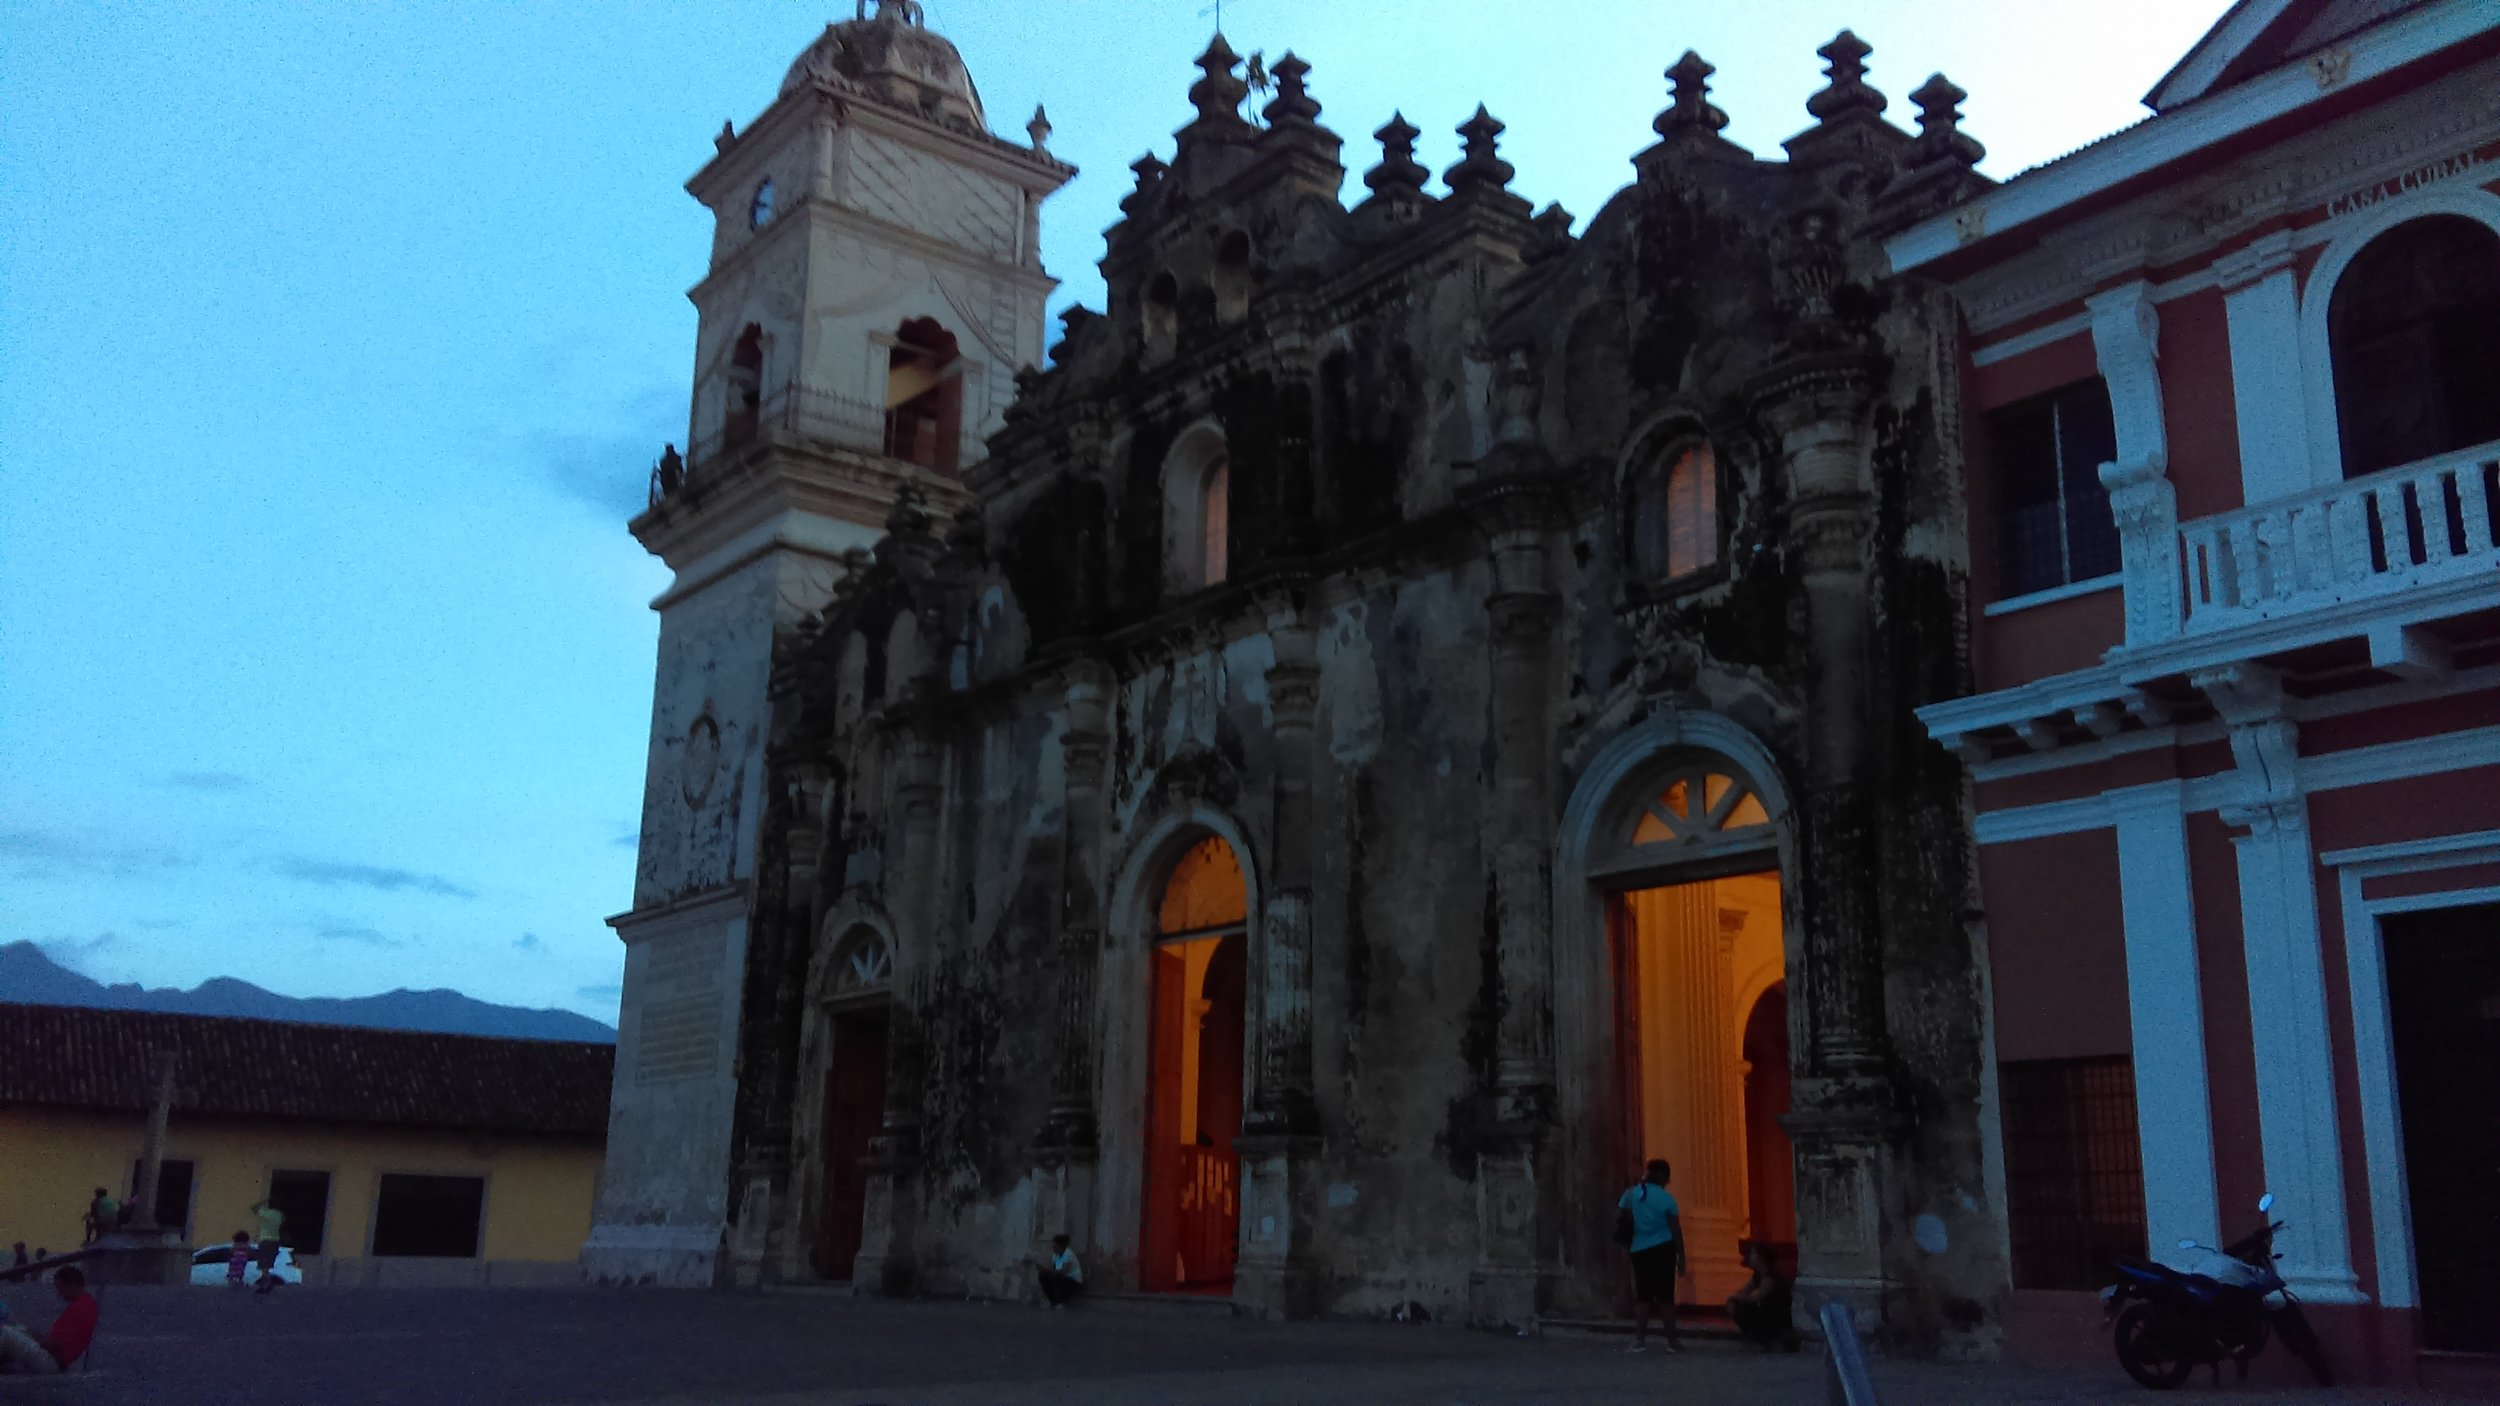 Iglesia de la Merced: the church next to my hostel, dating to the 16th century, but repaired twice, in the 1780's and 1860's due to damage